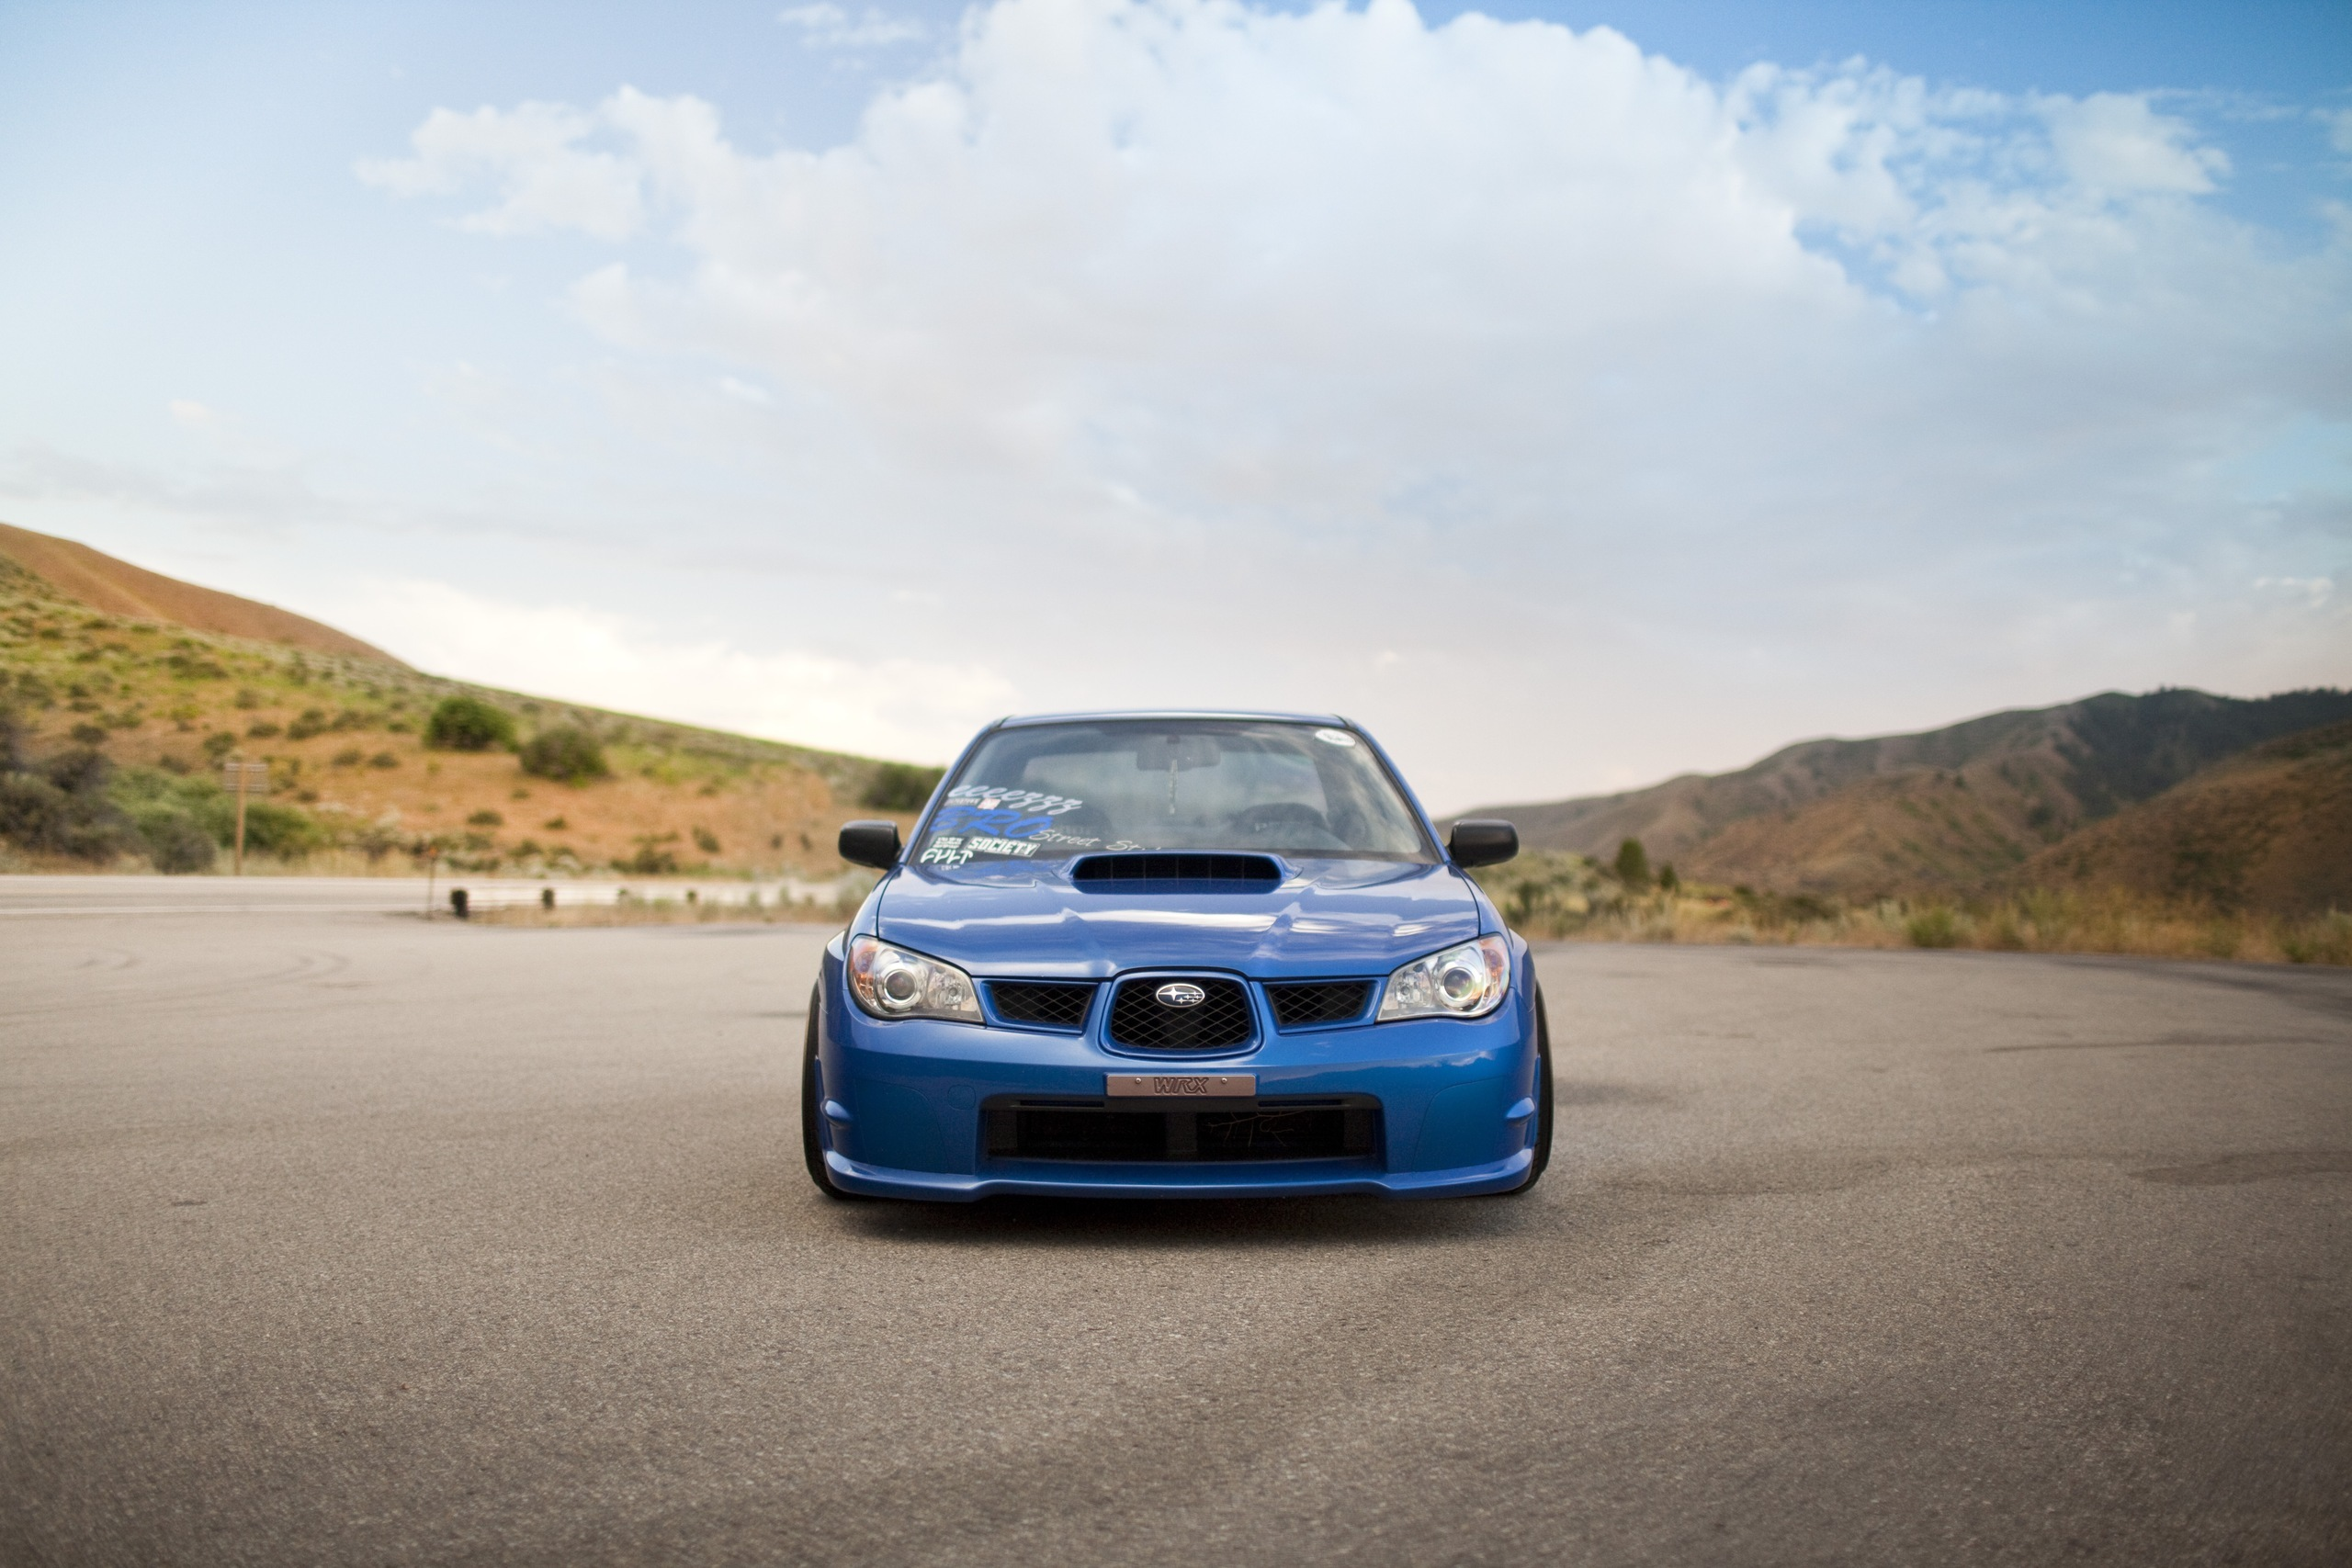 20008 download wallpaper Transport, Auto, Subaru screensavers and pictures for free